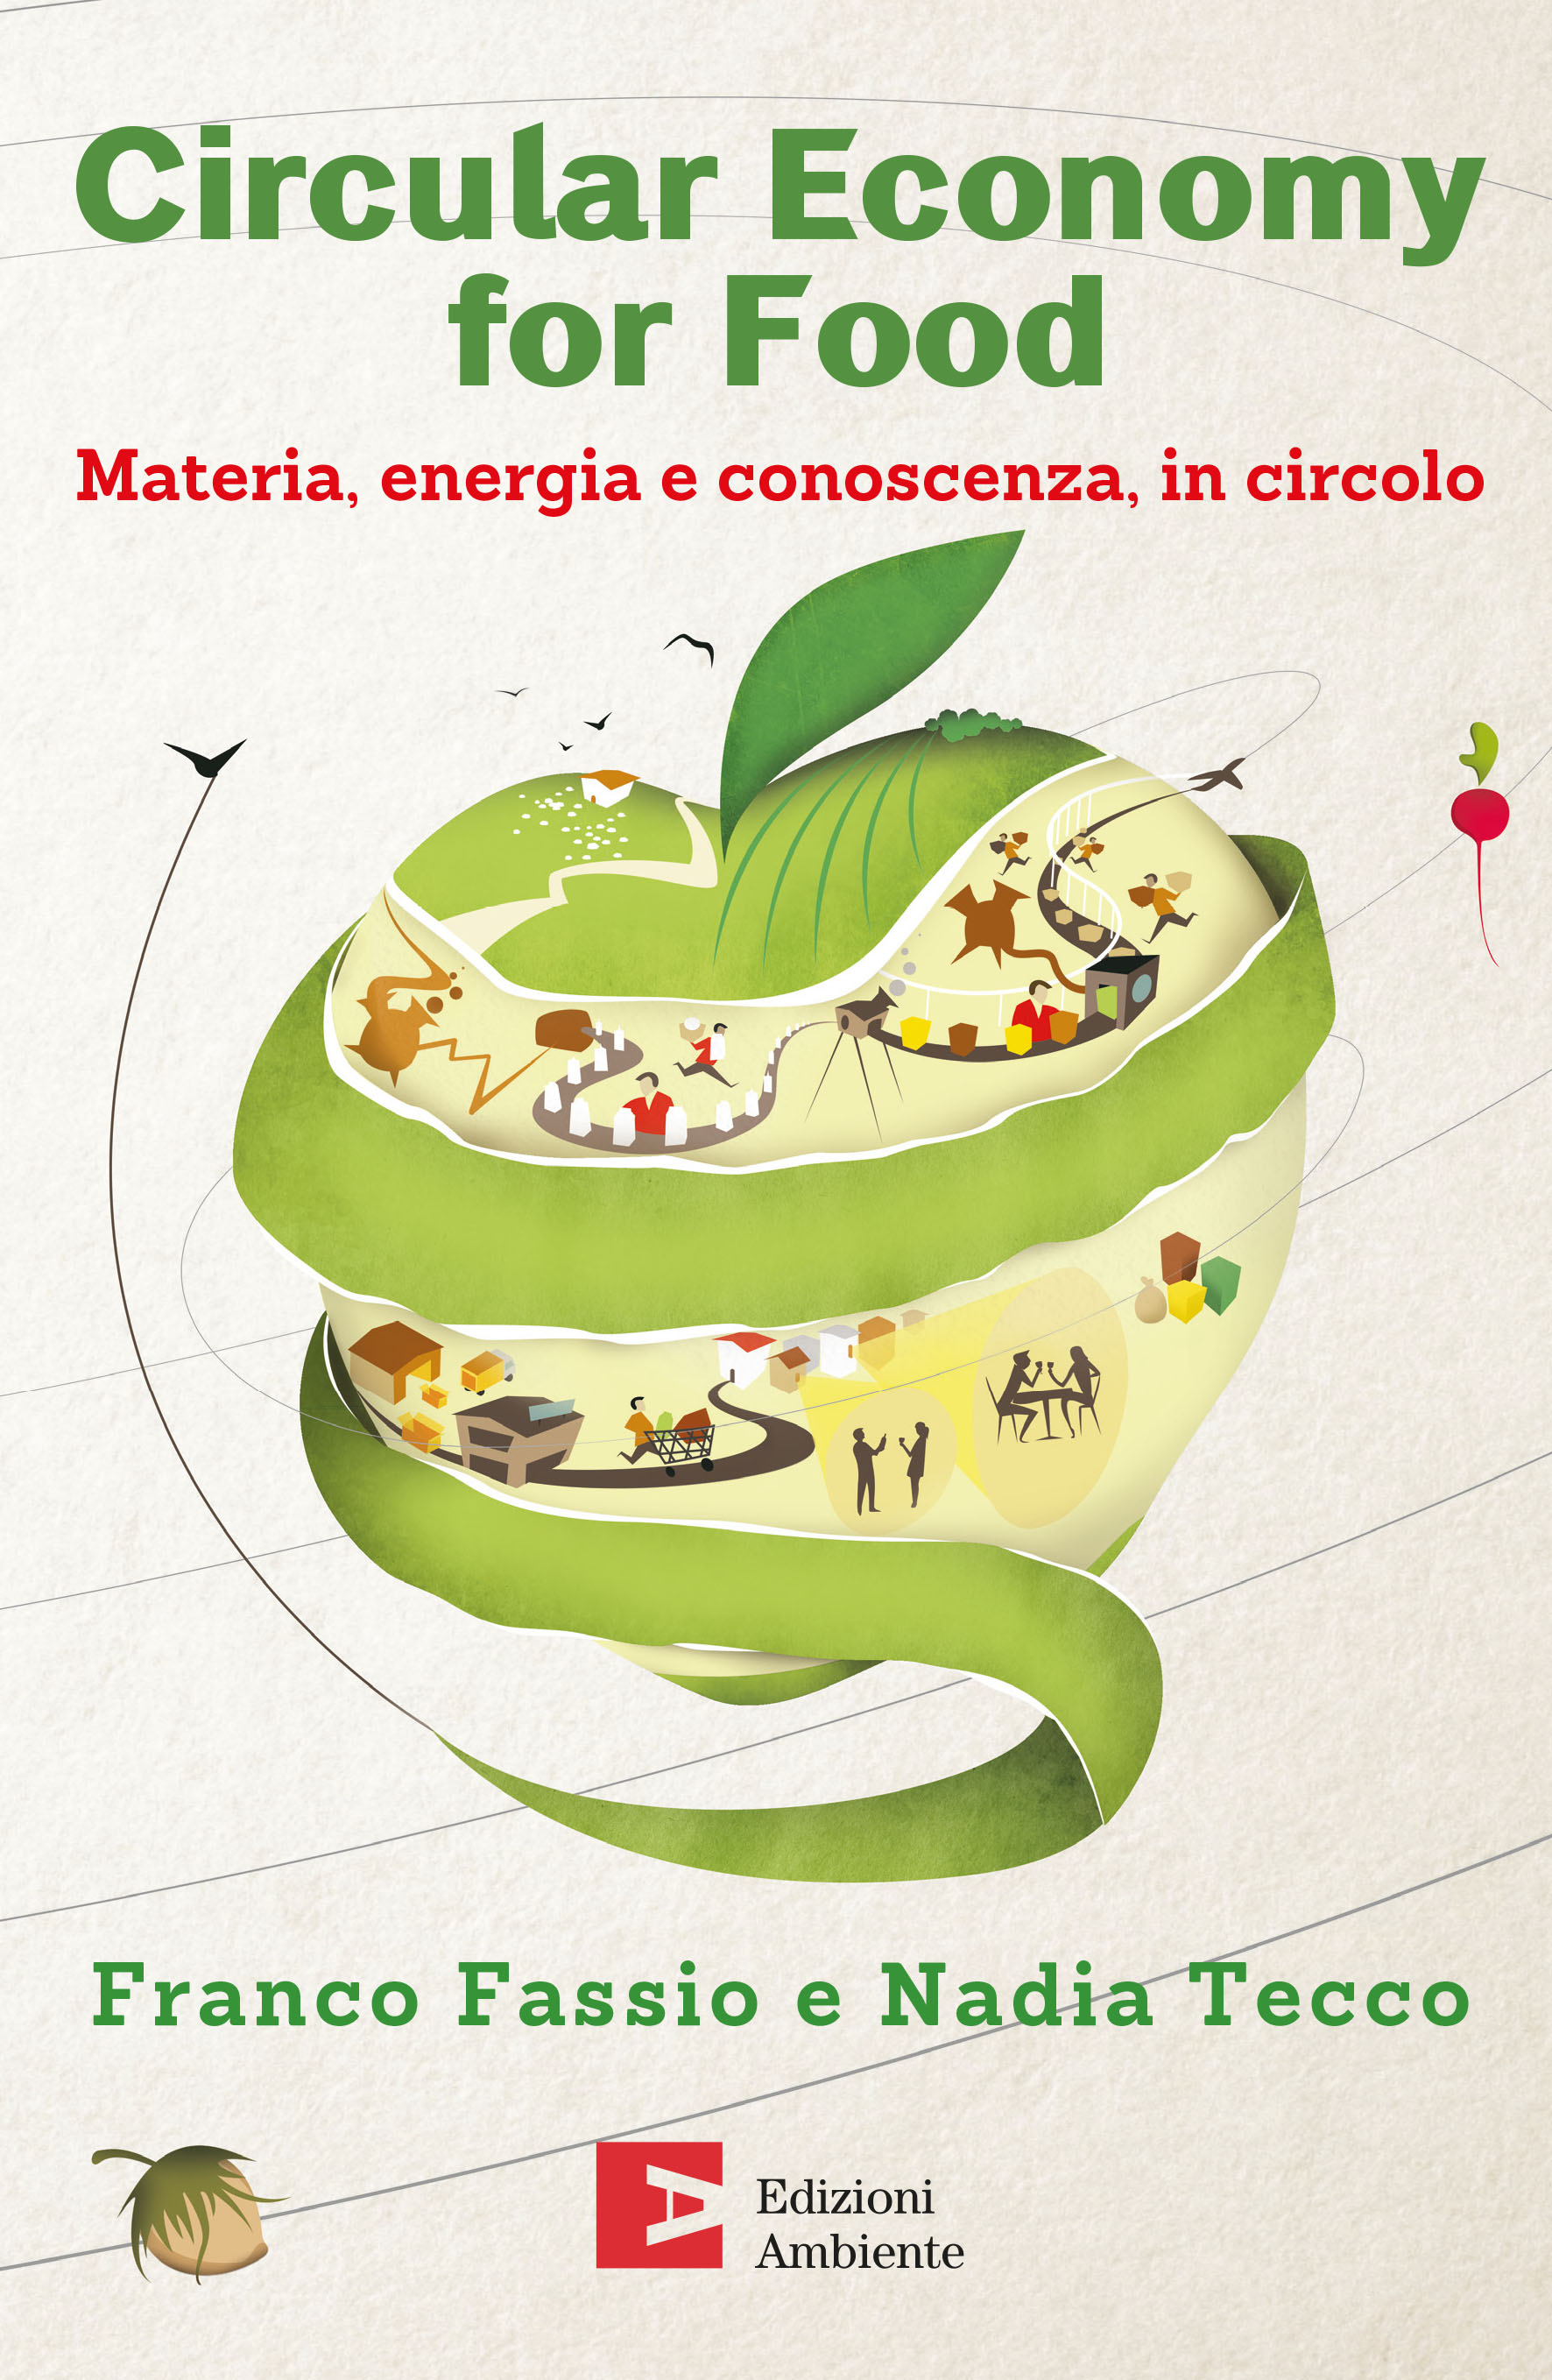 Circular economy for food - Edizioni Ambiente